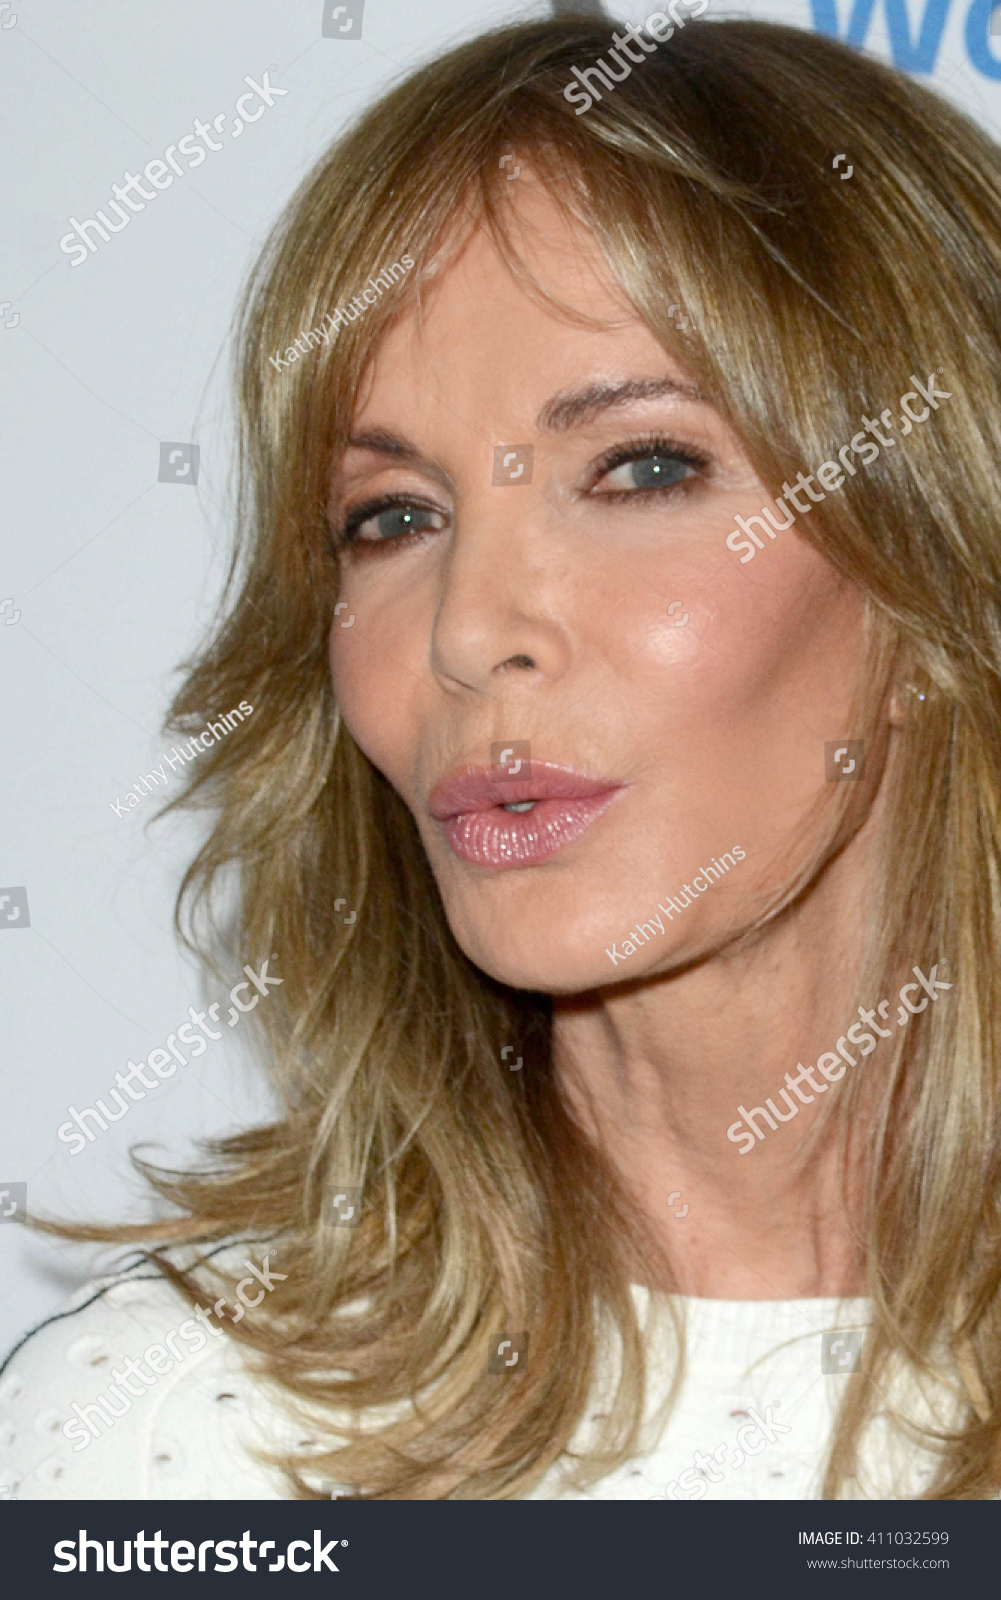 los angeles apr 14 jaclyn smith stock photo (edit now